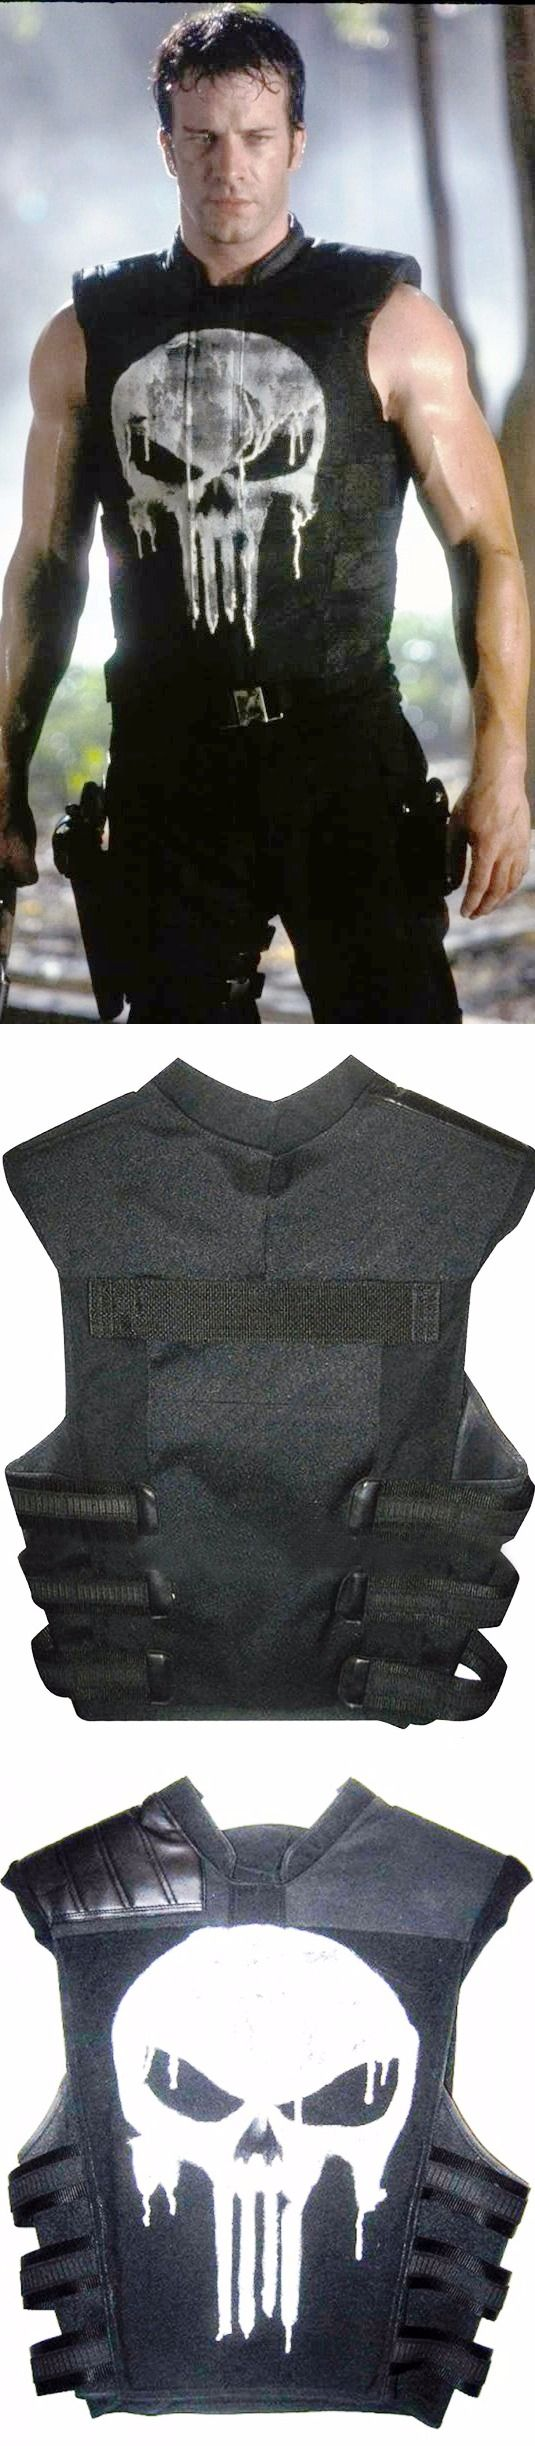 THOMAS JANE PUNISHER TACTICAL BLACK VEST    http://www.ebay.com/itm/THOMAS-JANE-PUNISHER-TACTICAL-BLACK-FAUX-LEATHER-VEST-ALL-SIZES-AVAILABLE-/172641649511   If you want a costume for an attire gathering or fundamentally just what you want for unplanned occasions, there's no need to aspect more, as we have Thomas Jane Punisher Tactical Black Vest. This Vest is certainly stimulated from the film The Punisher. The Thomas Jane Punisher Black  Vest is made up of Synthetic Leather with an inward…